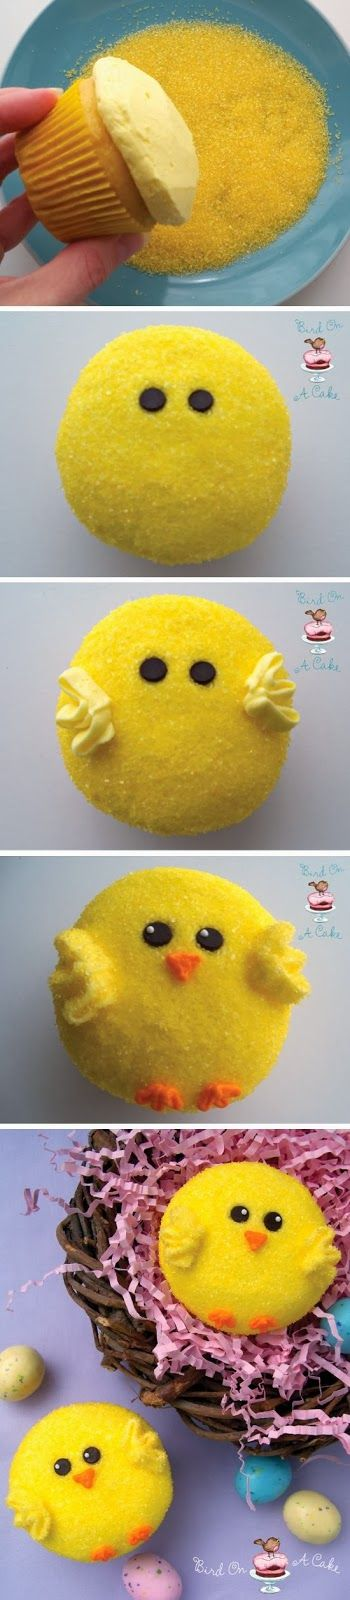 Cool ~ So simple, yet so effective! We'll certainly be making these fab Easter…